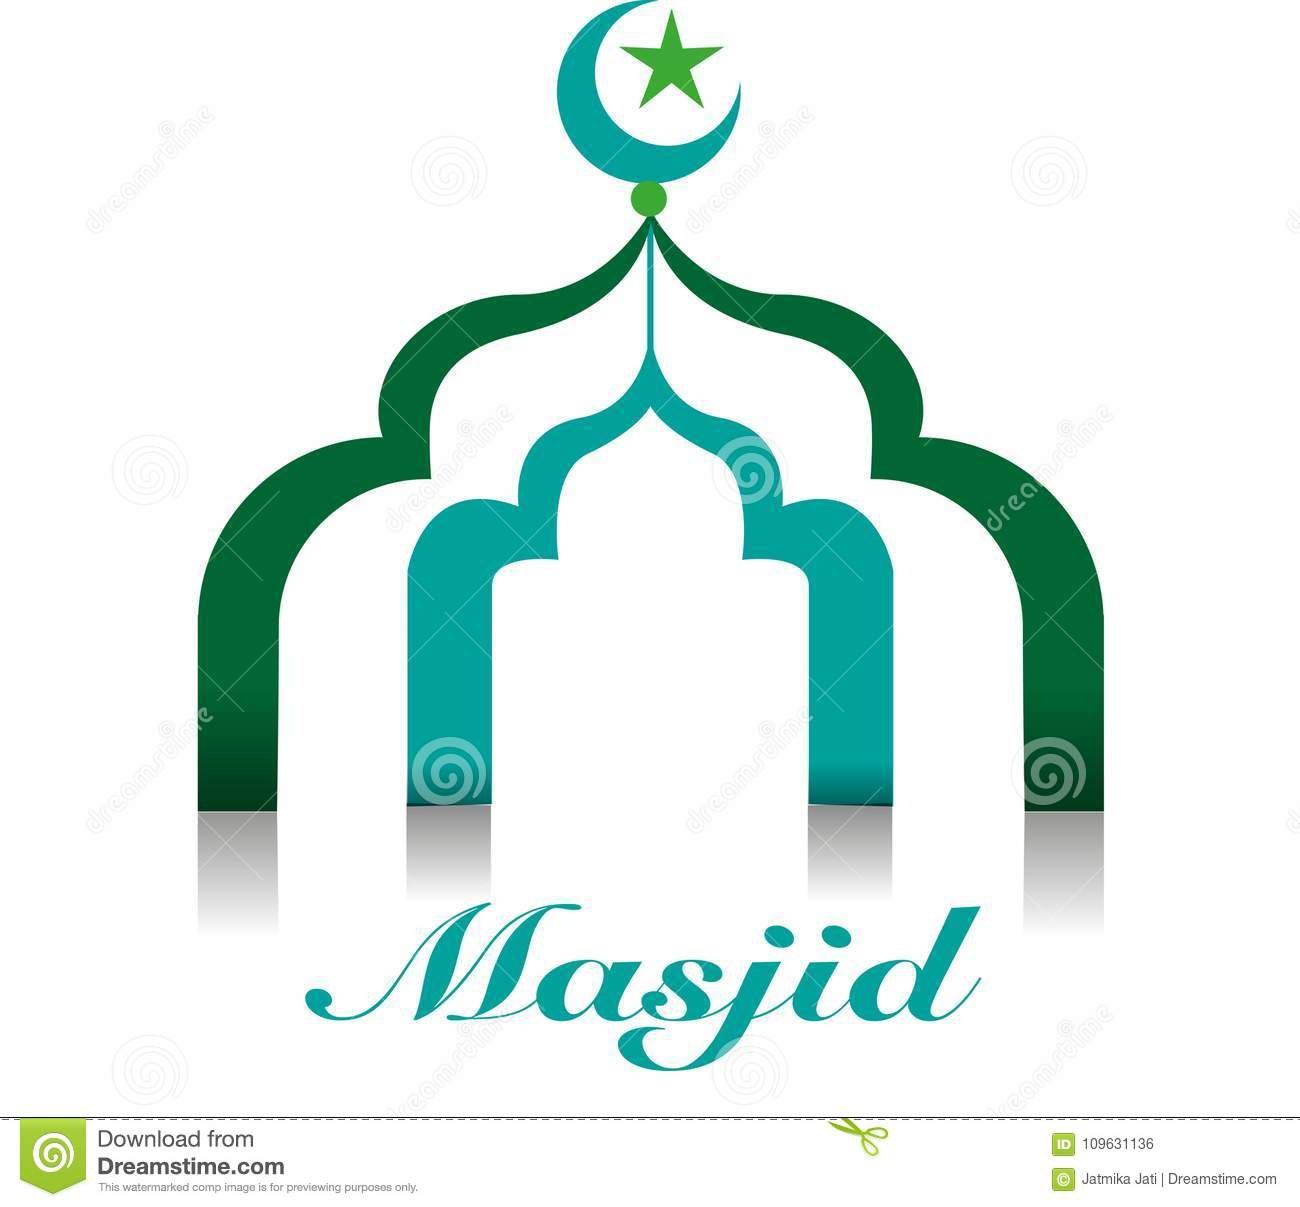 mosque or masjid symbol or icon stock vector illustration of banner religion 109631136 https www dreamstime com mosque masjid symbol icon vector abstract islamic muslim foundation image109631136